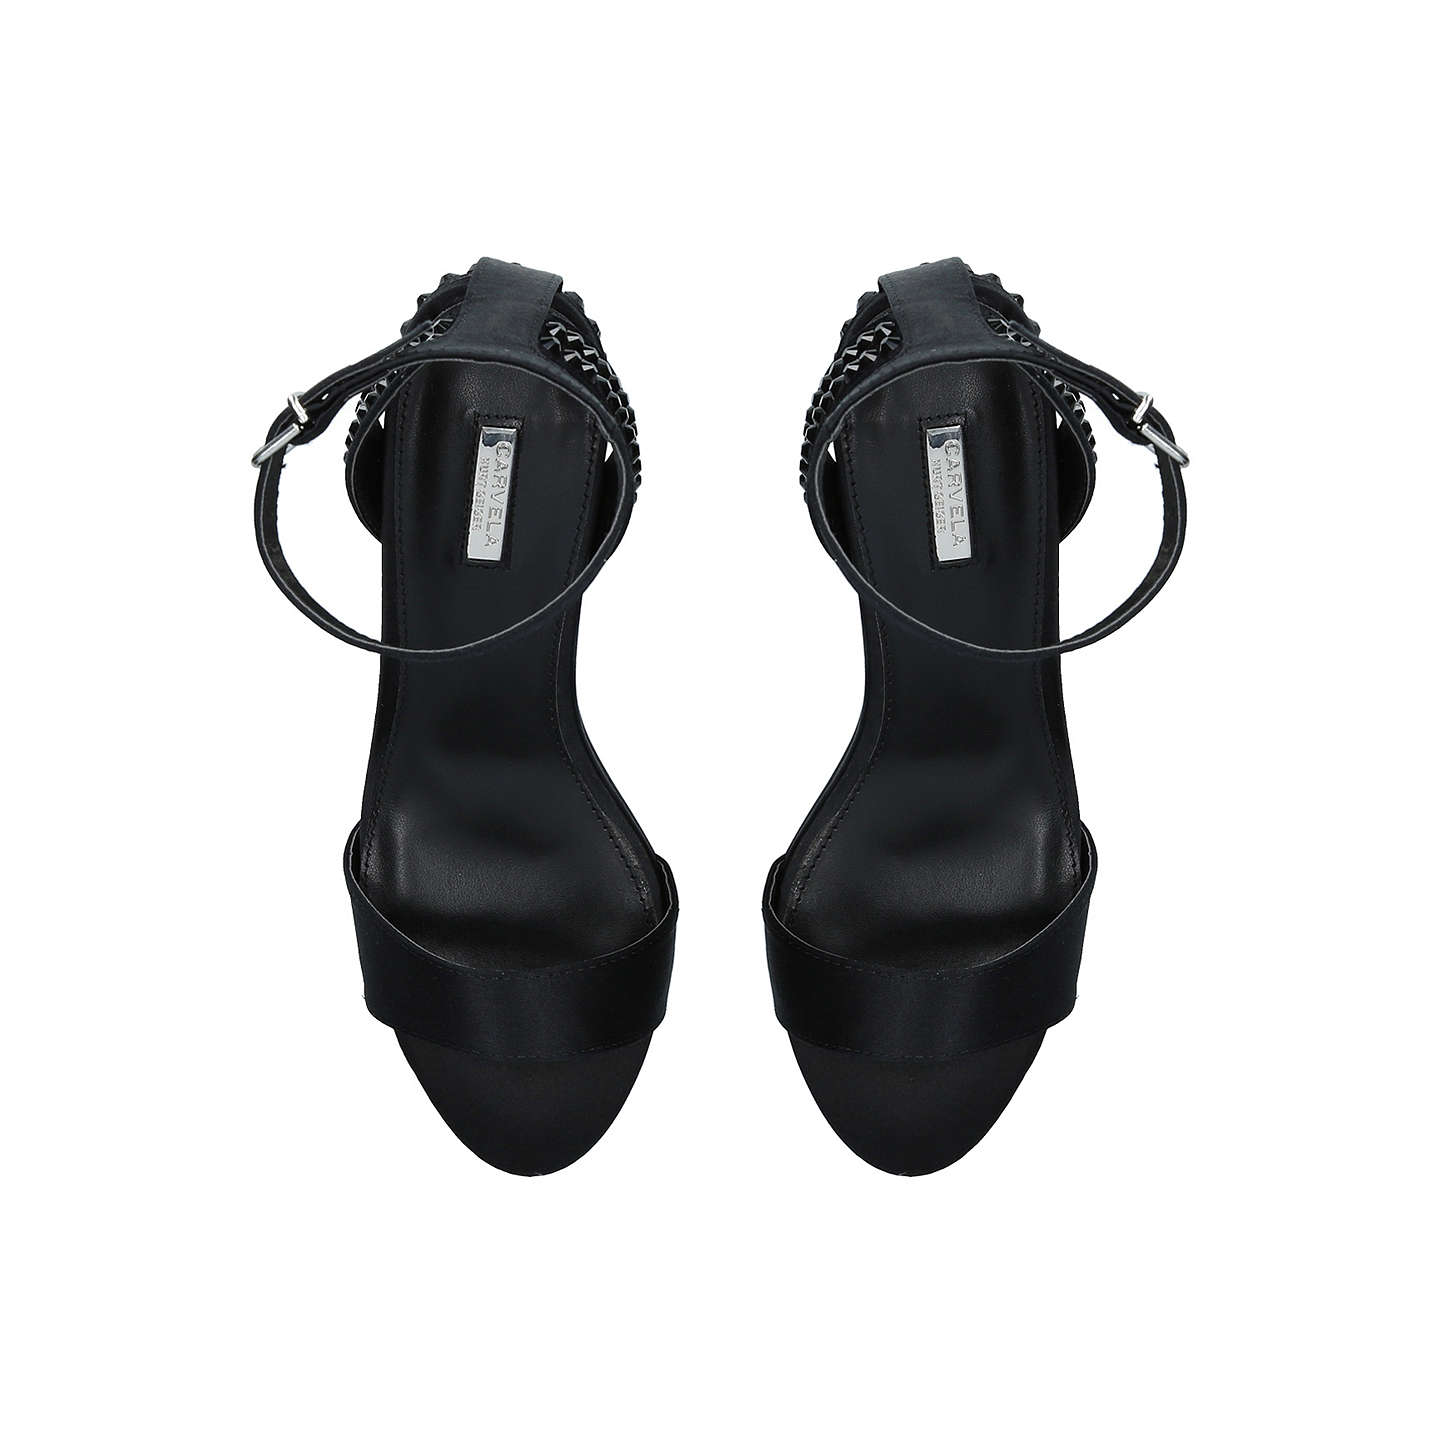 BuyCarvela Gianni 2 Studded Block Heeled Sandals, Black, 3 Online at johnlewis.com